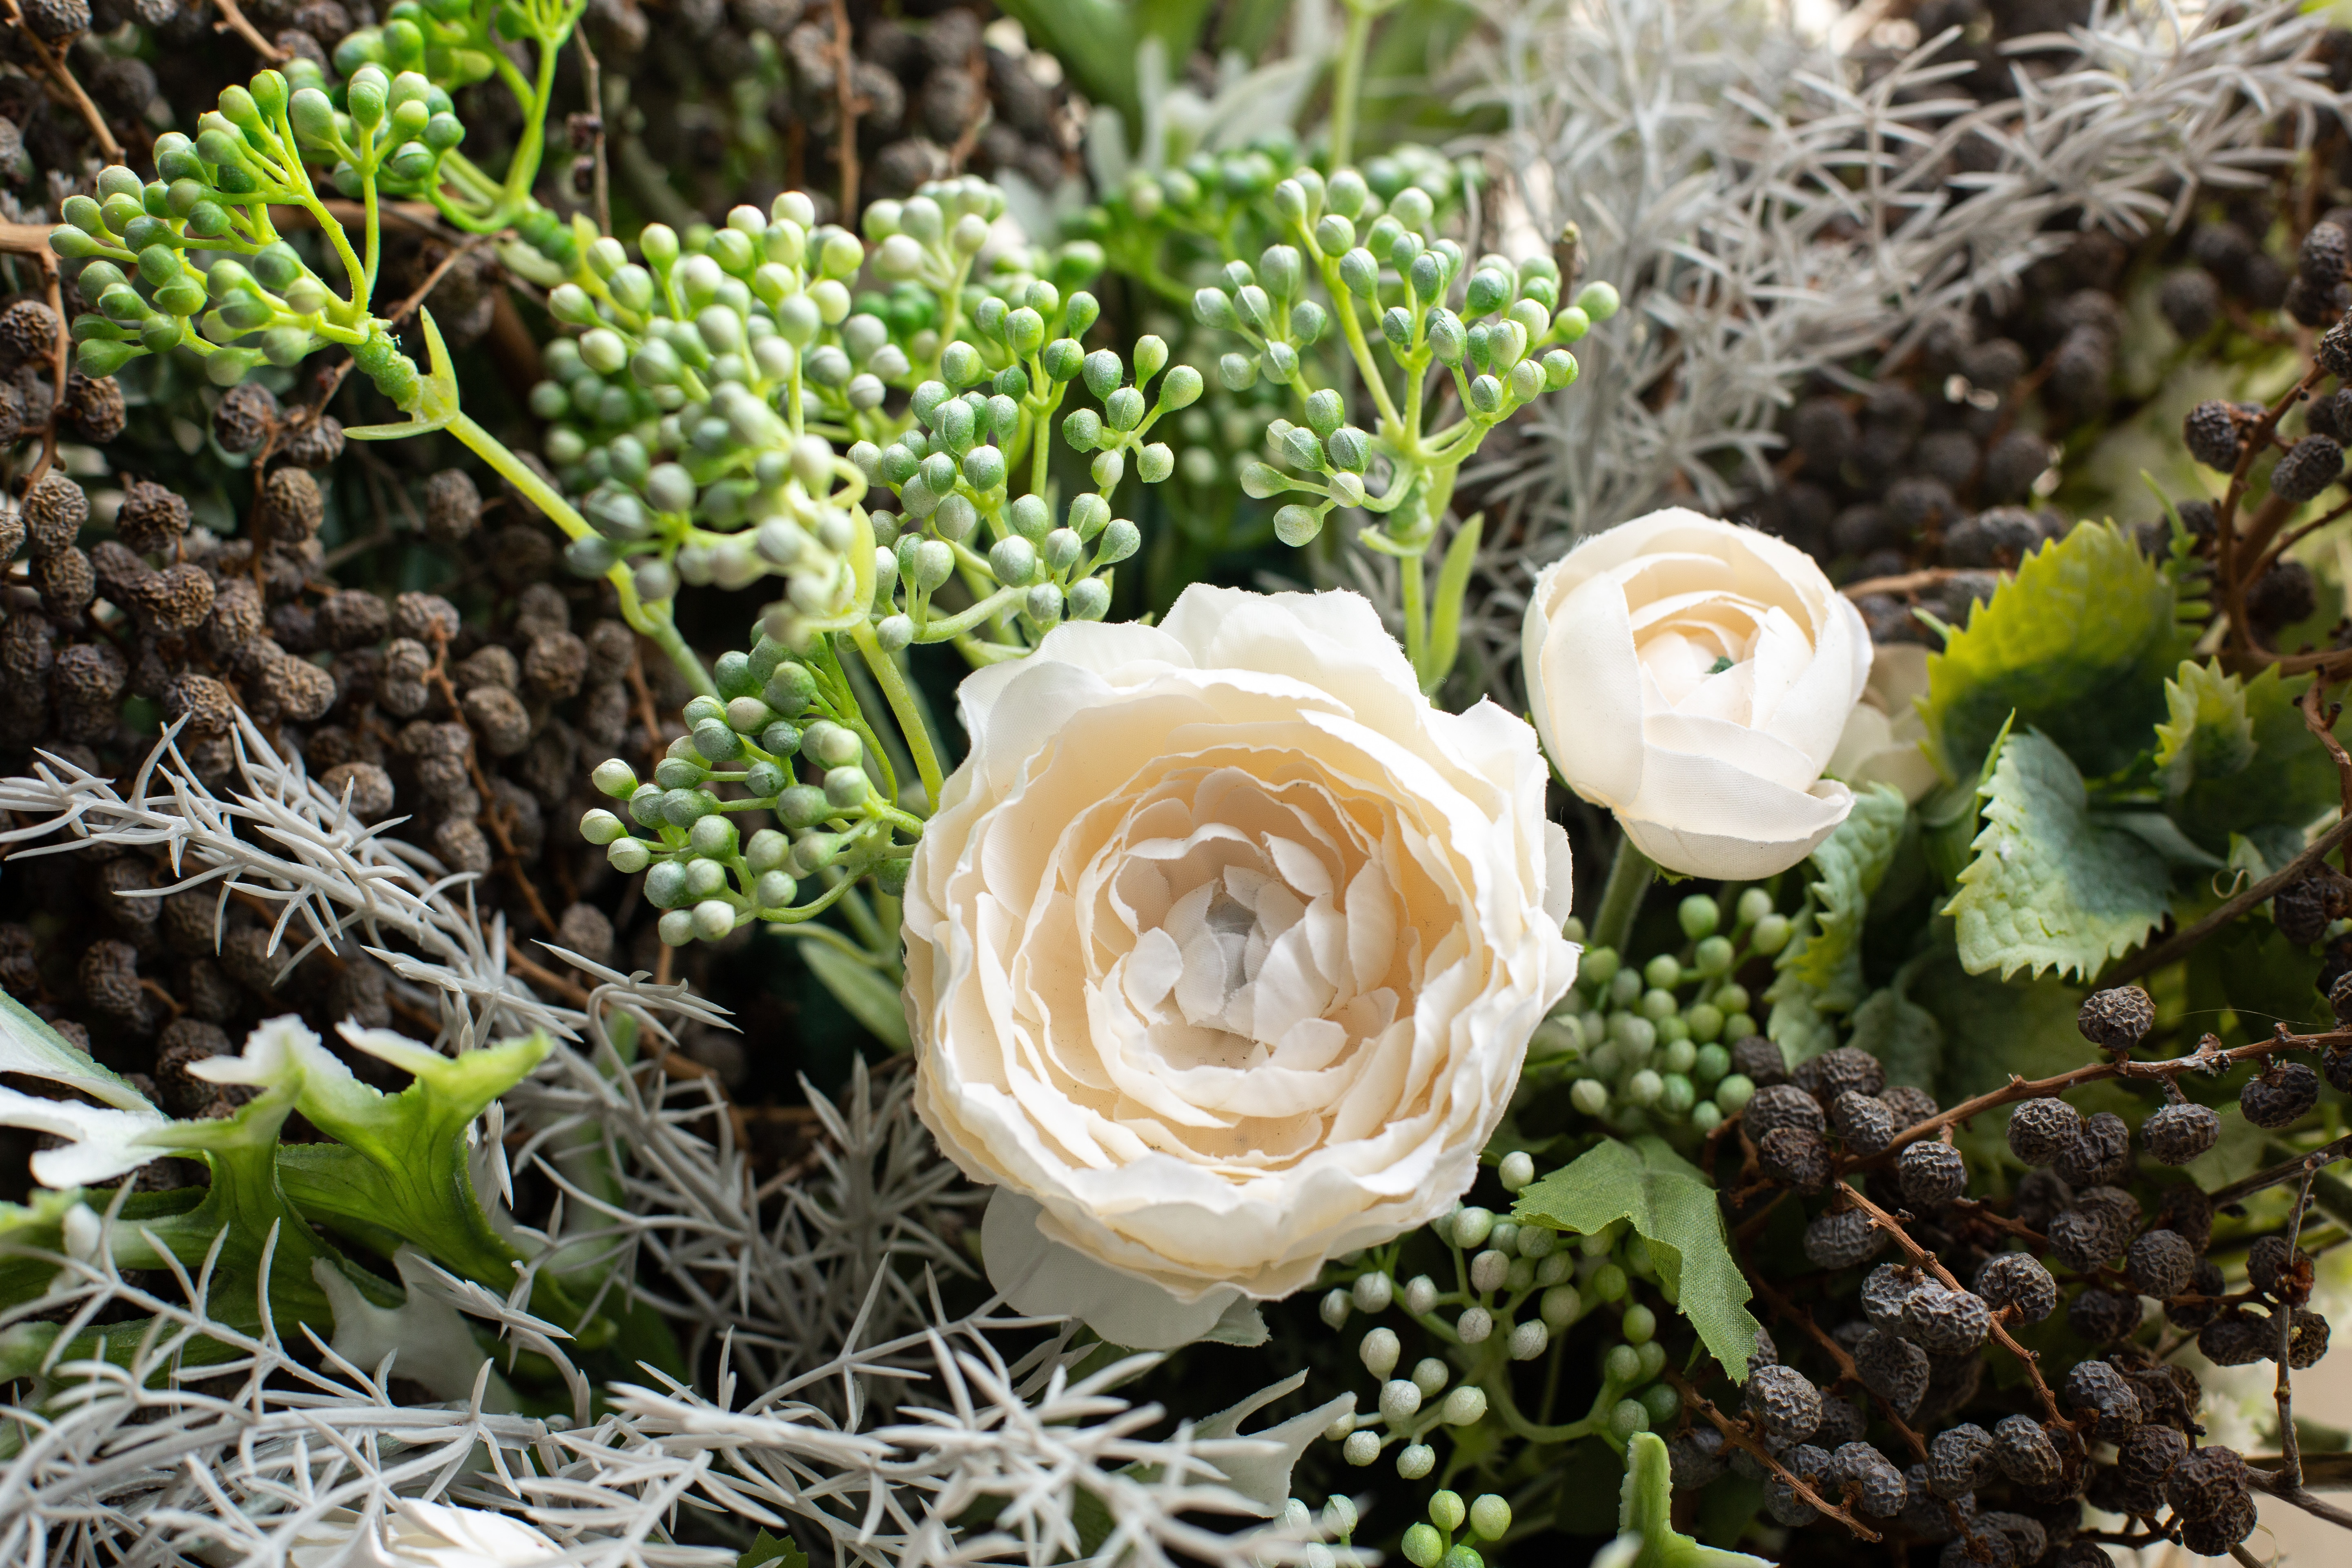 Arrangement of white flowers and dried flowers in a wicker basket side view